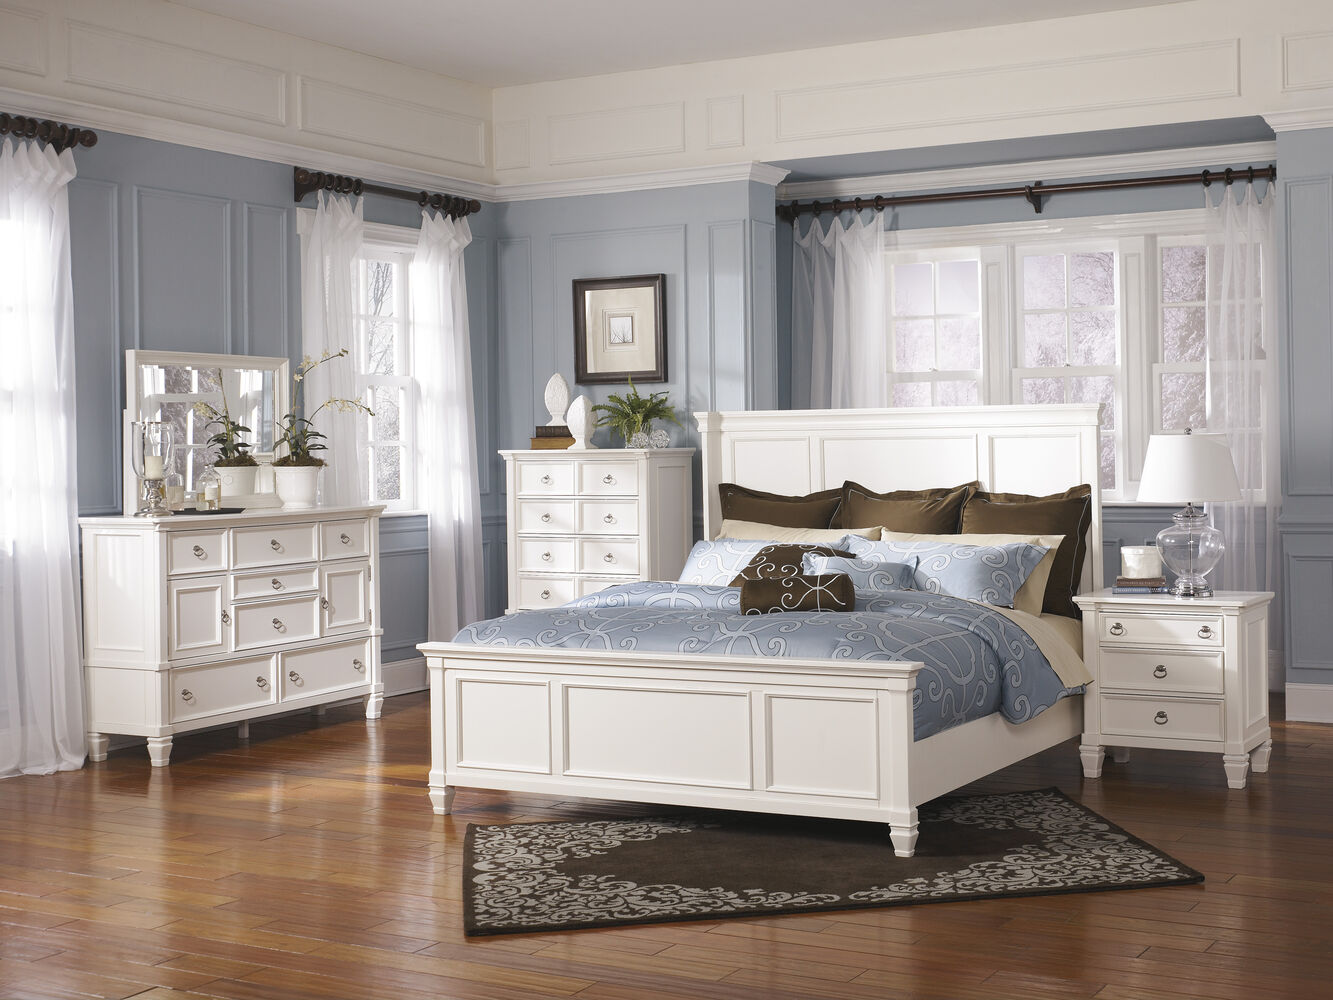 Ashley white bedroom furniture - Ashley Millennium Prentice White Suite Ashley Millennium Prentice White Suite